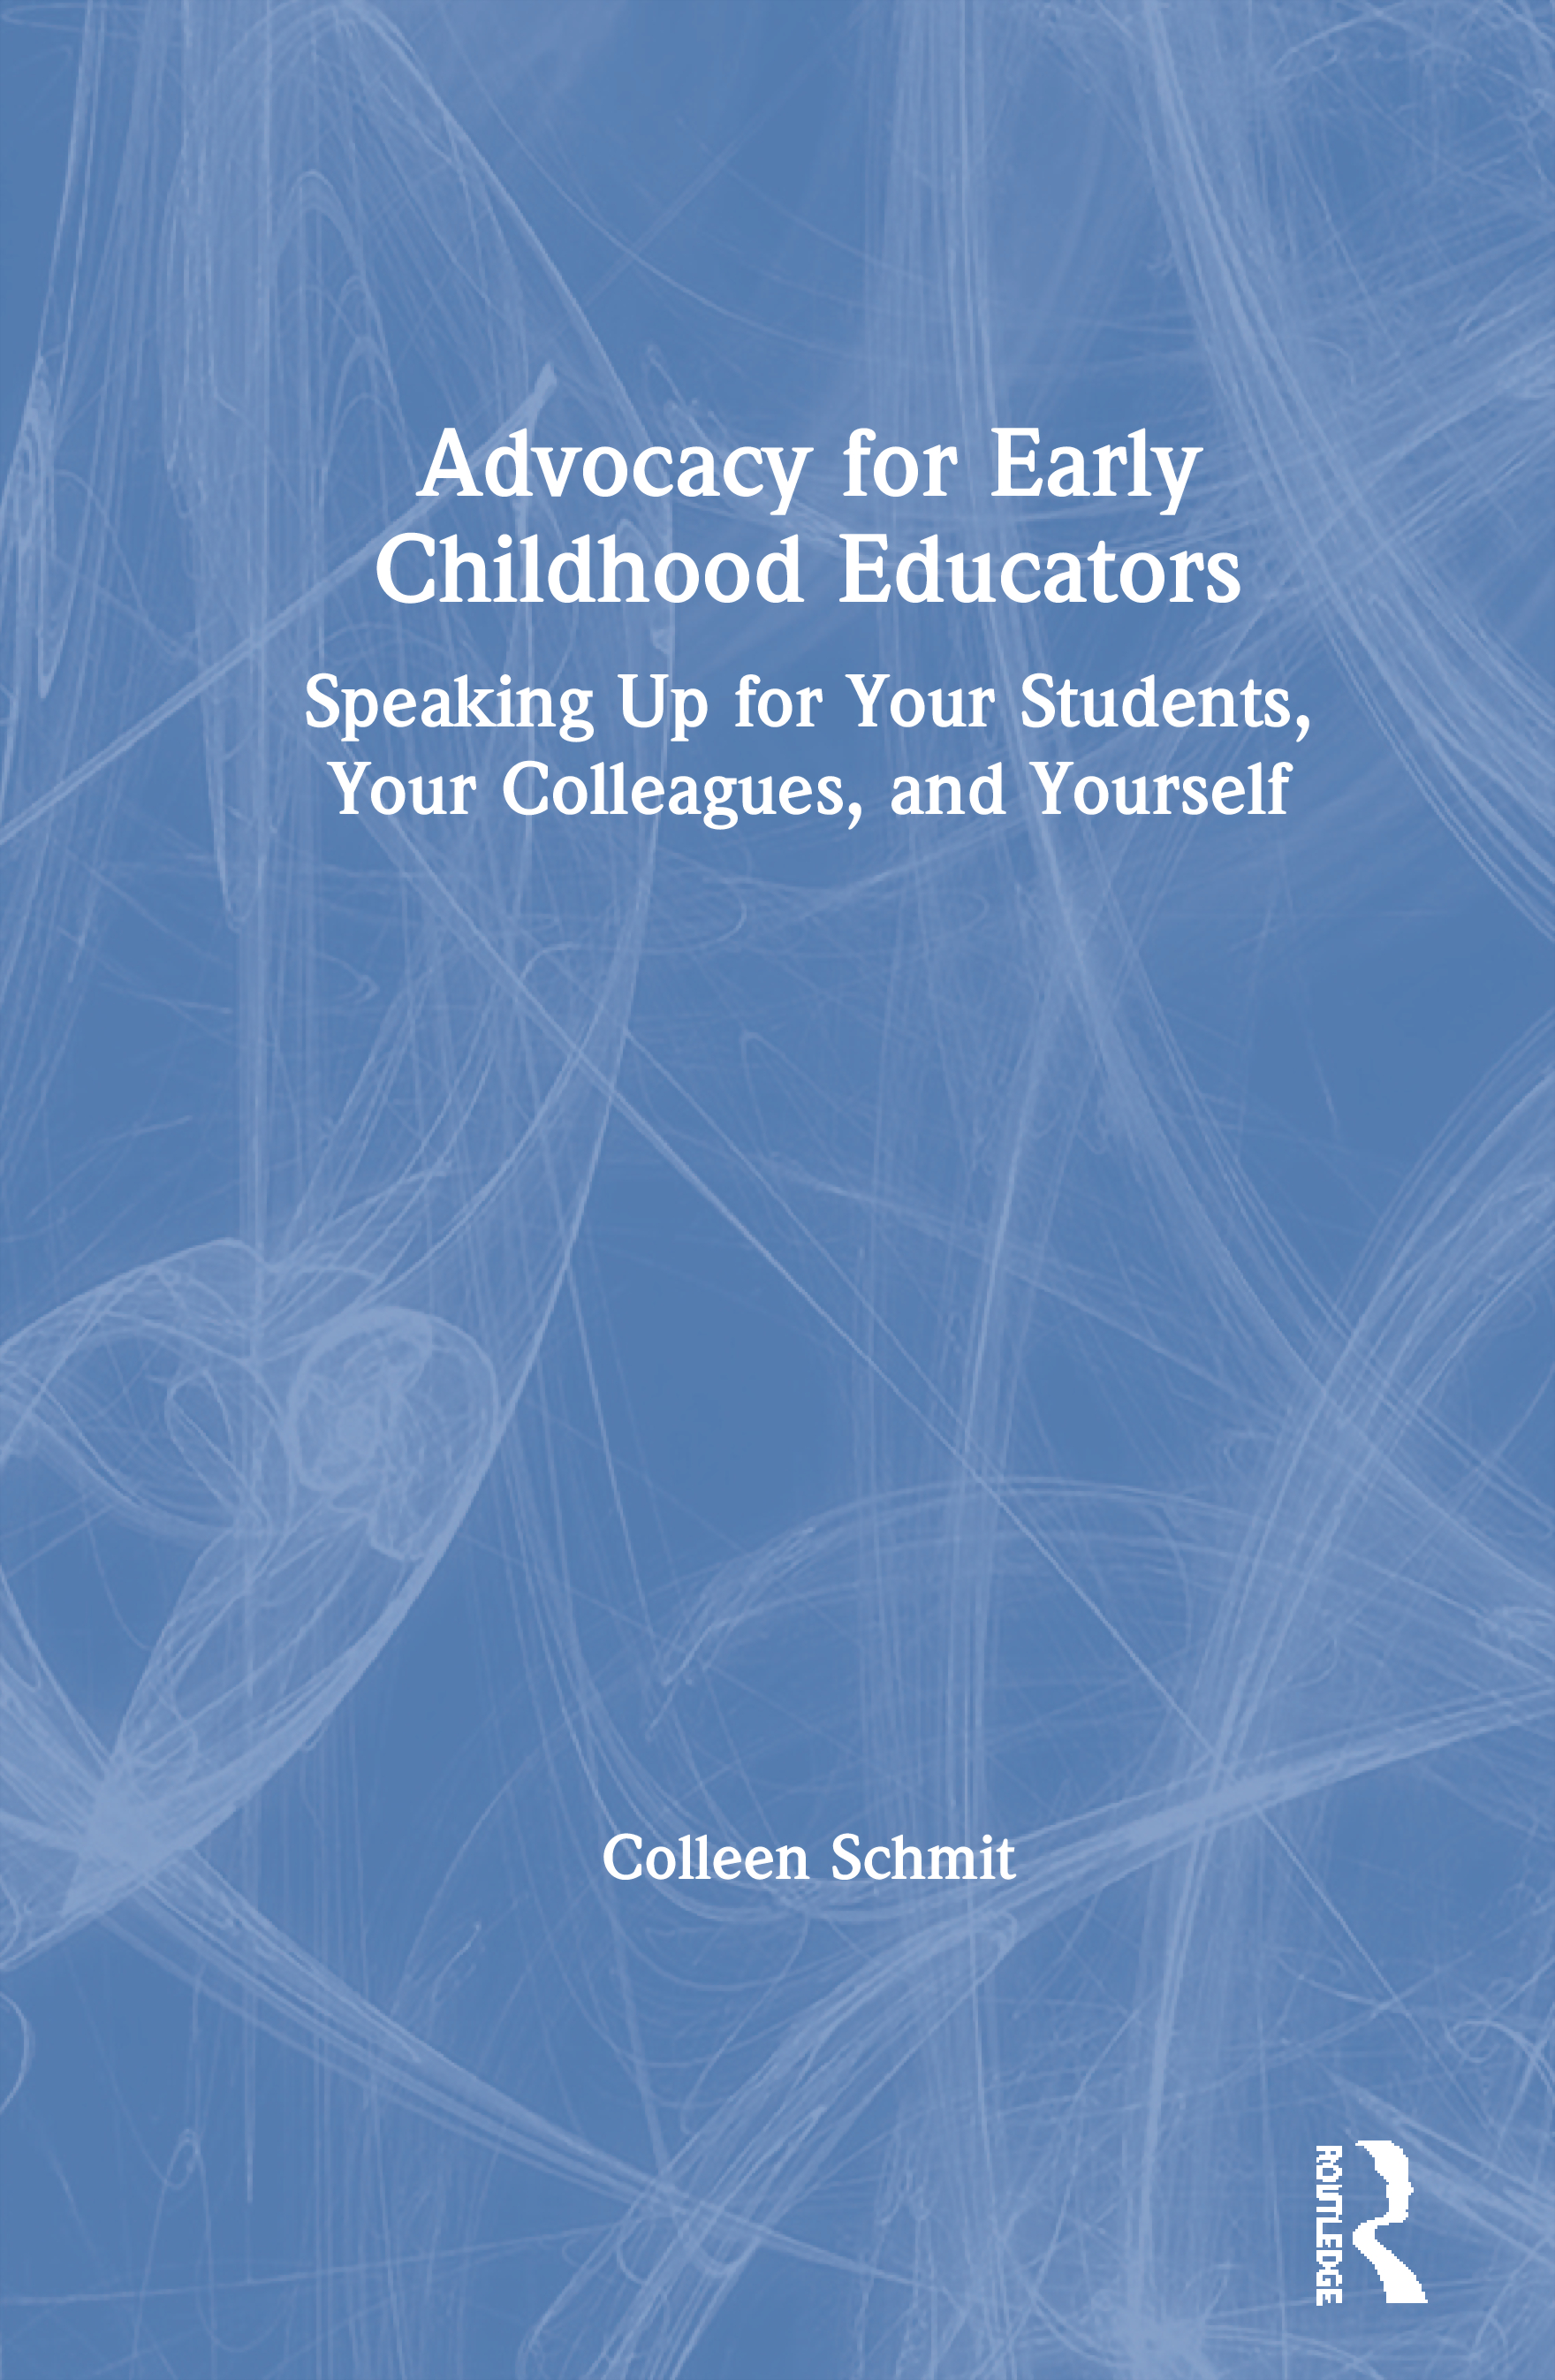 Advocacy for Early Childhood Educators: Speaking Up for Your Students, Your Colleagues, and Yourself book cover